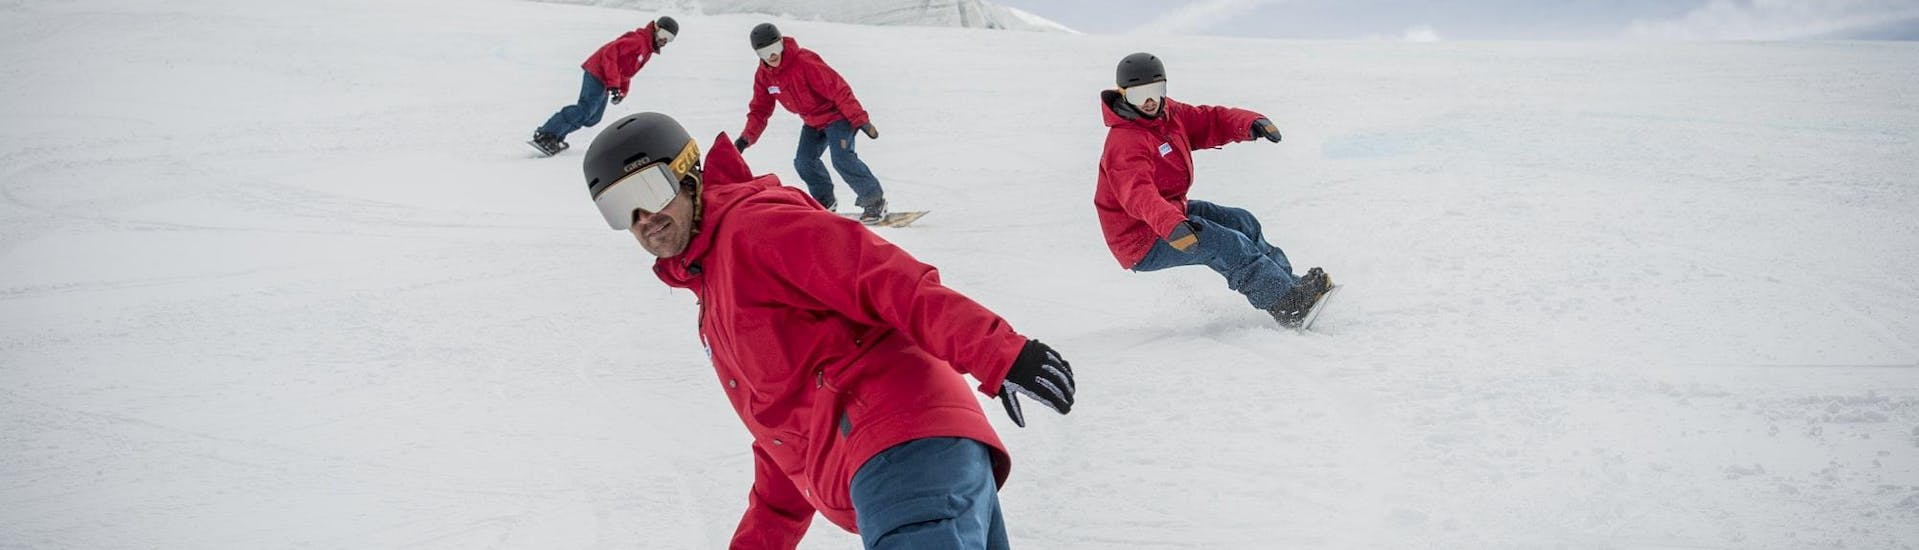 Snowboarding Lessons (6-16 y.) for Adv. Boarders - Full Day